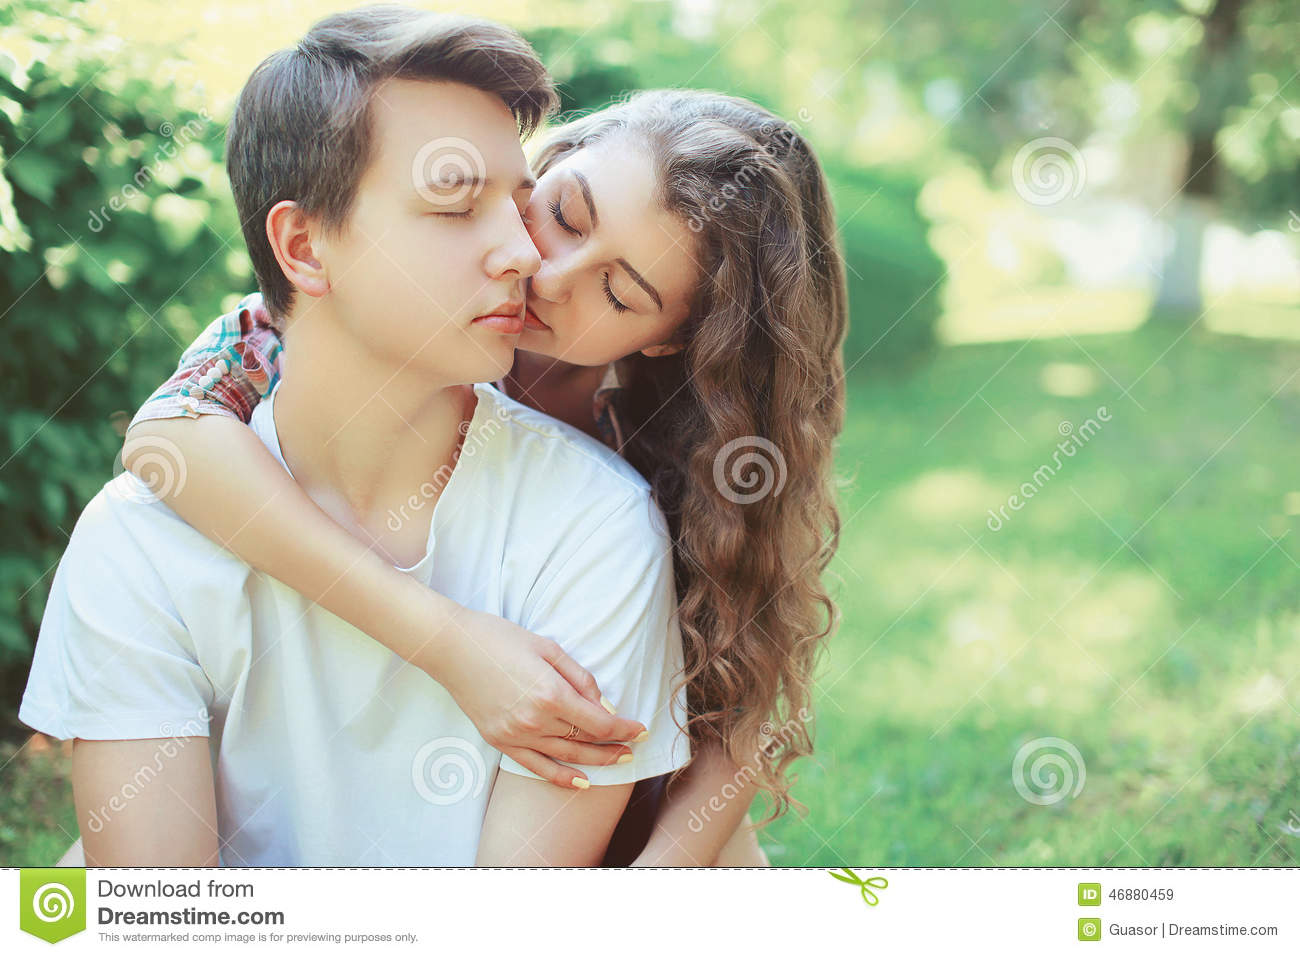 Lovely young couple teenagers in love